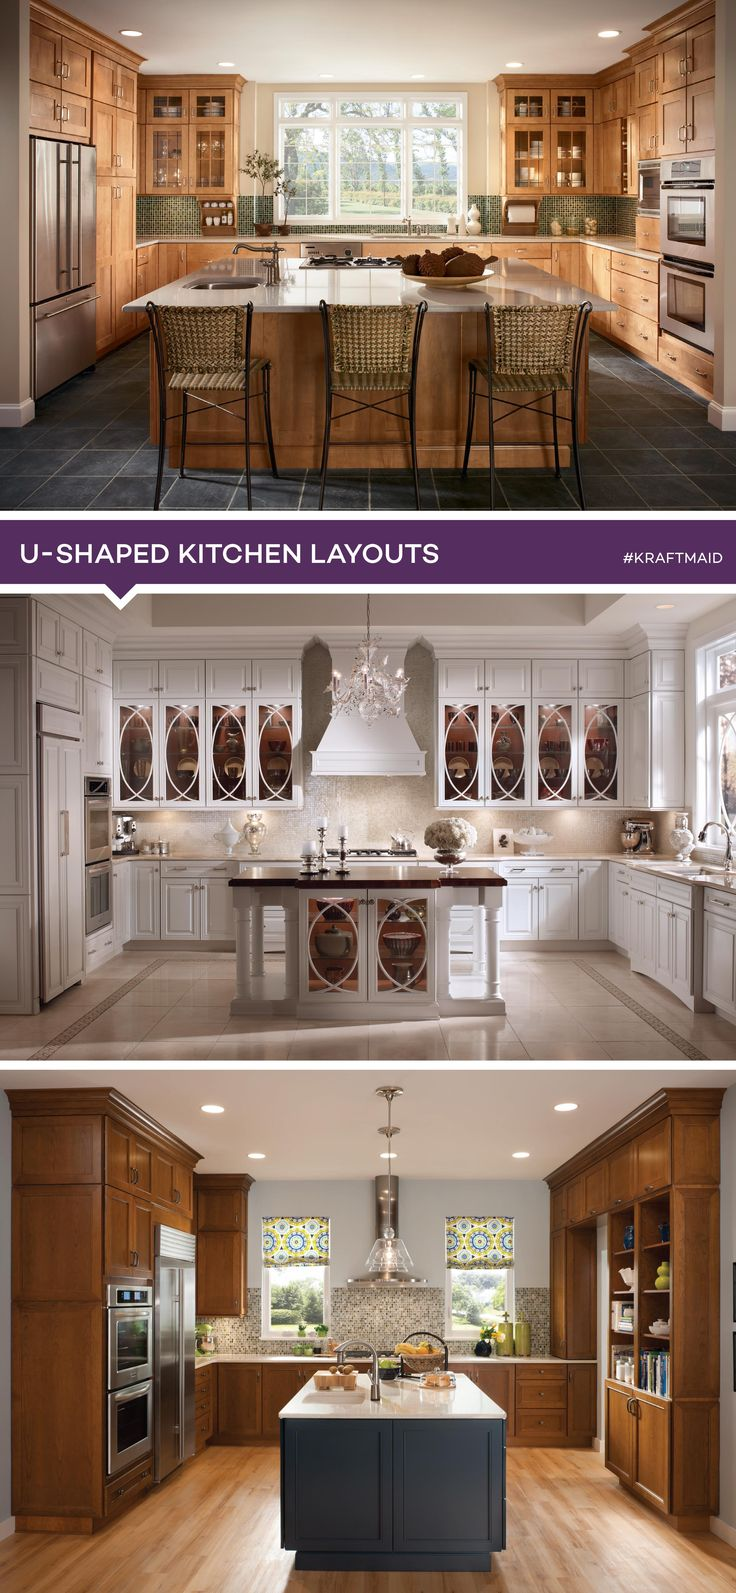 146 best kitchen images on pinterest kitchen ideas kitchen